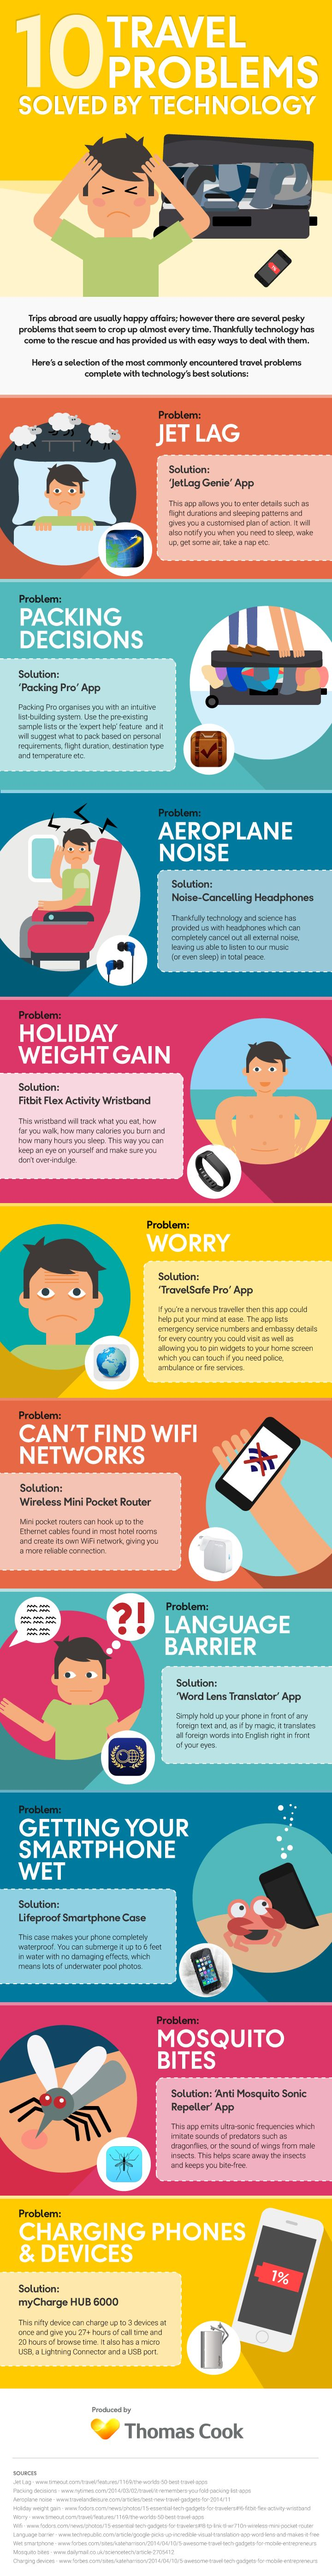 10 Travel Problems Solved by Technology #infographic #Travel #Technology